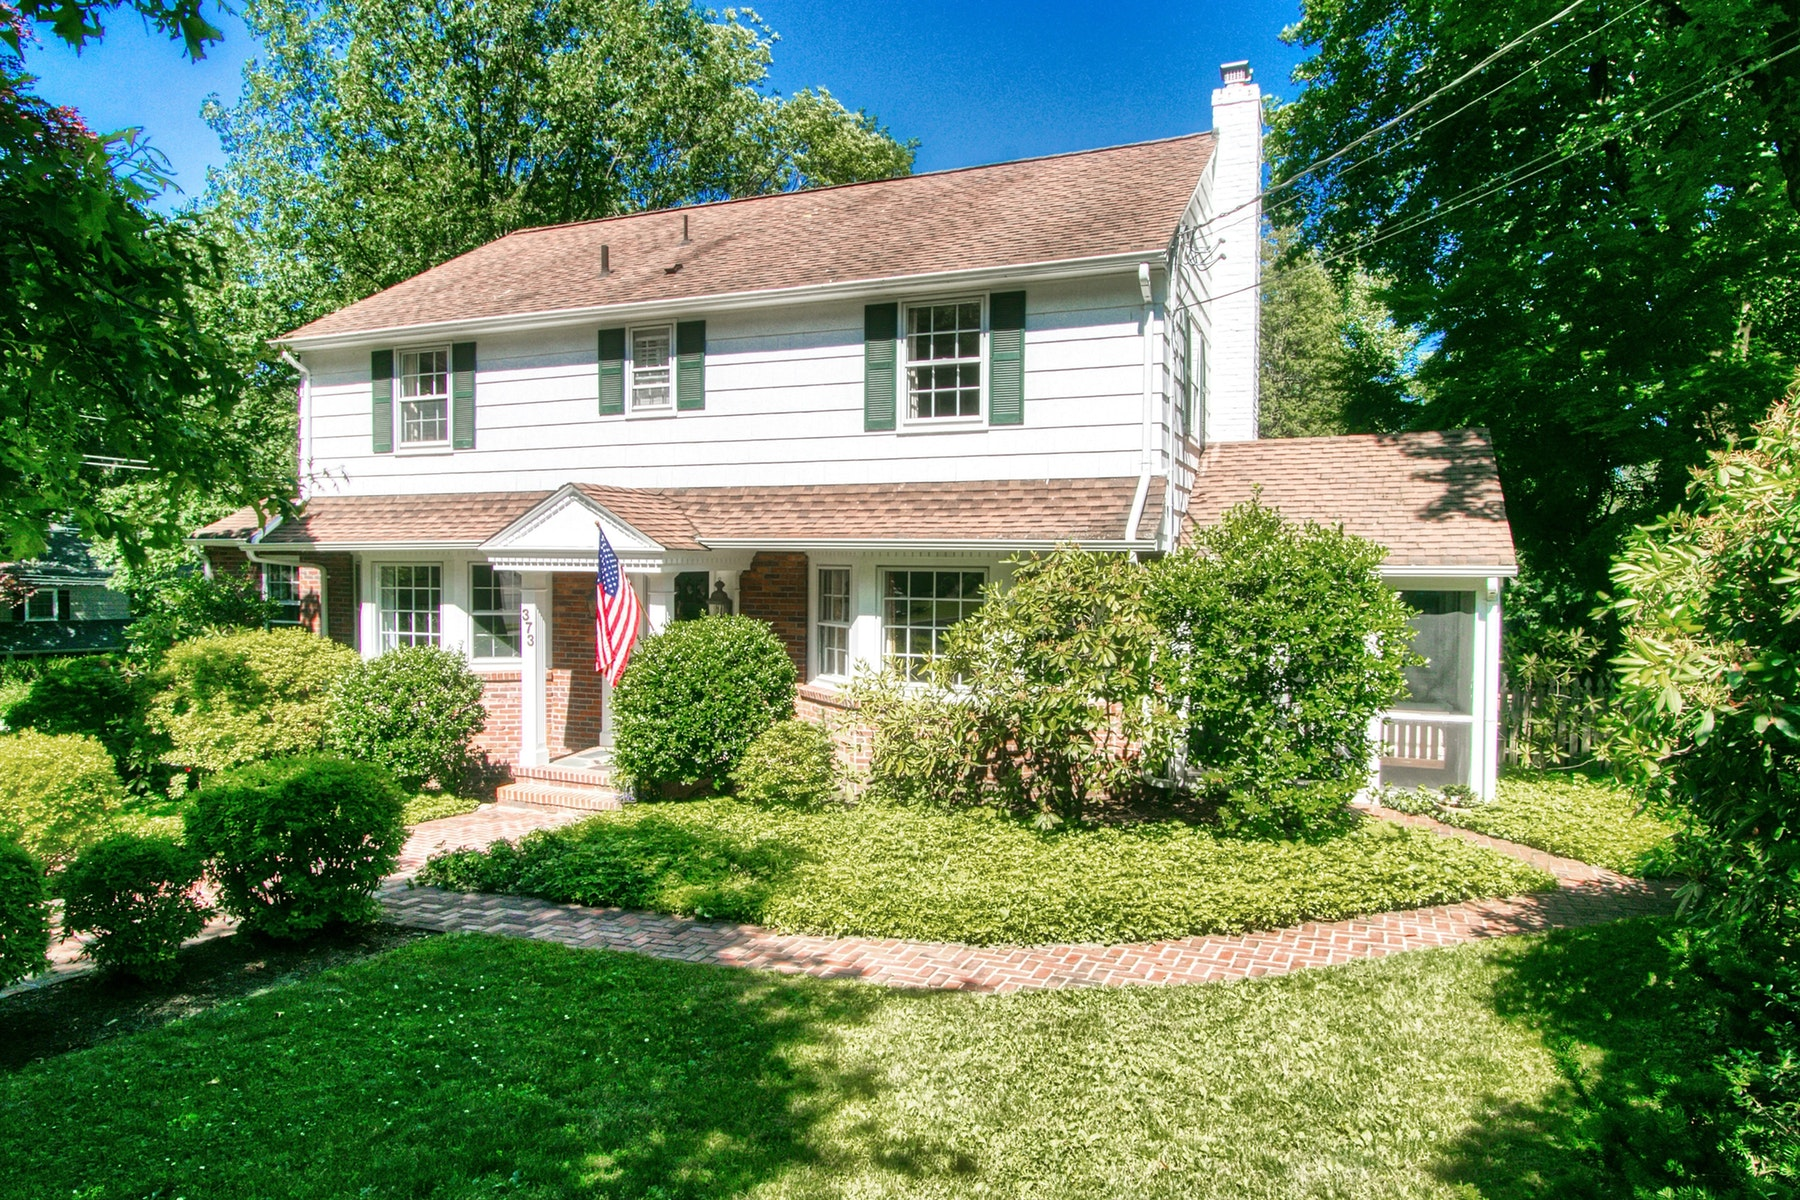 Single Family Homes for Sale at Classic Colonial! 373 Hillcrest Road Ridgewood, New Jersey 07450 United States